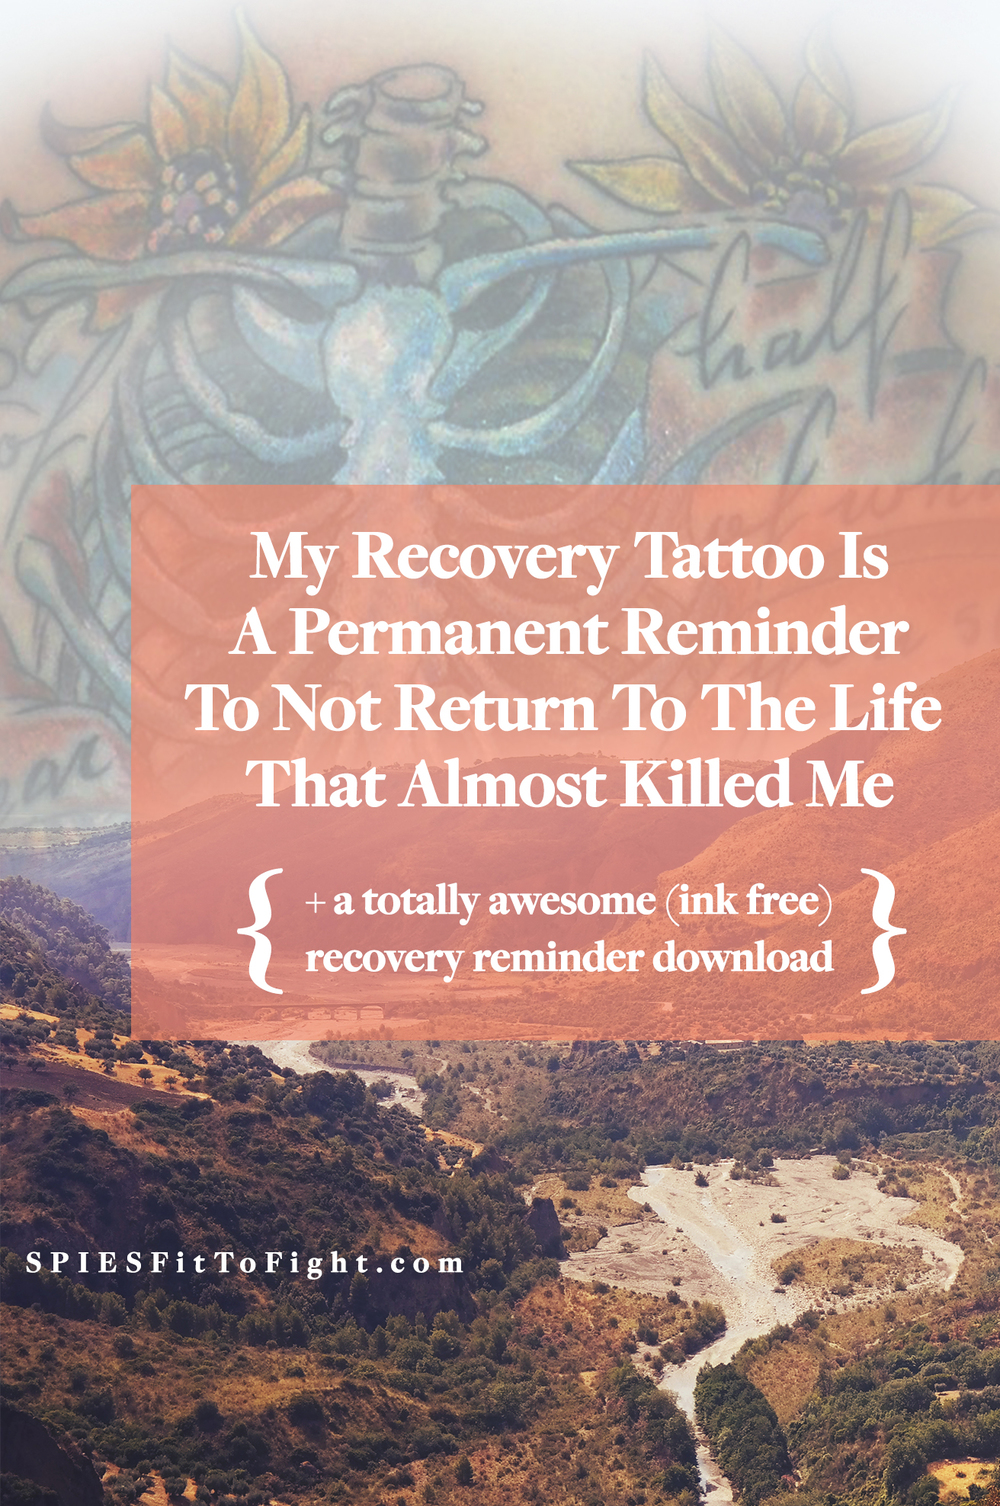 Are you in recovery from a mental illness? Check out the reasons behind this eating disorder recovery tattoo!